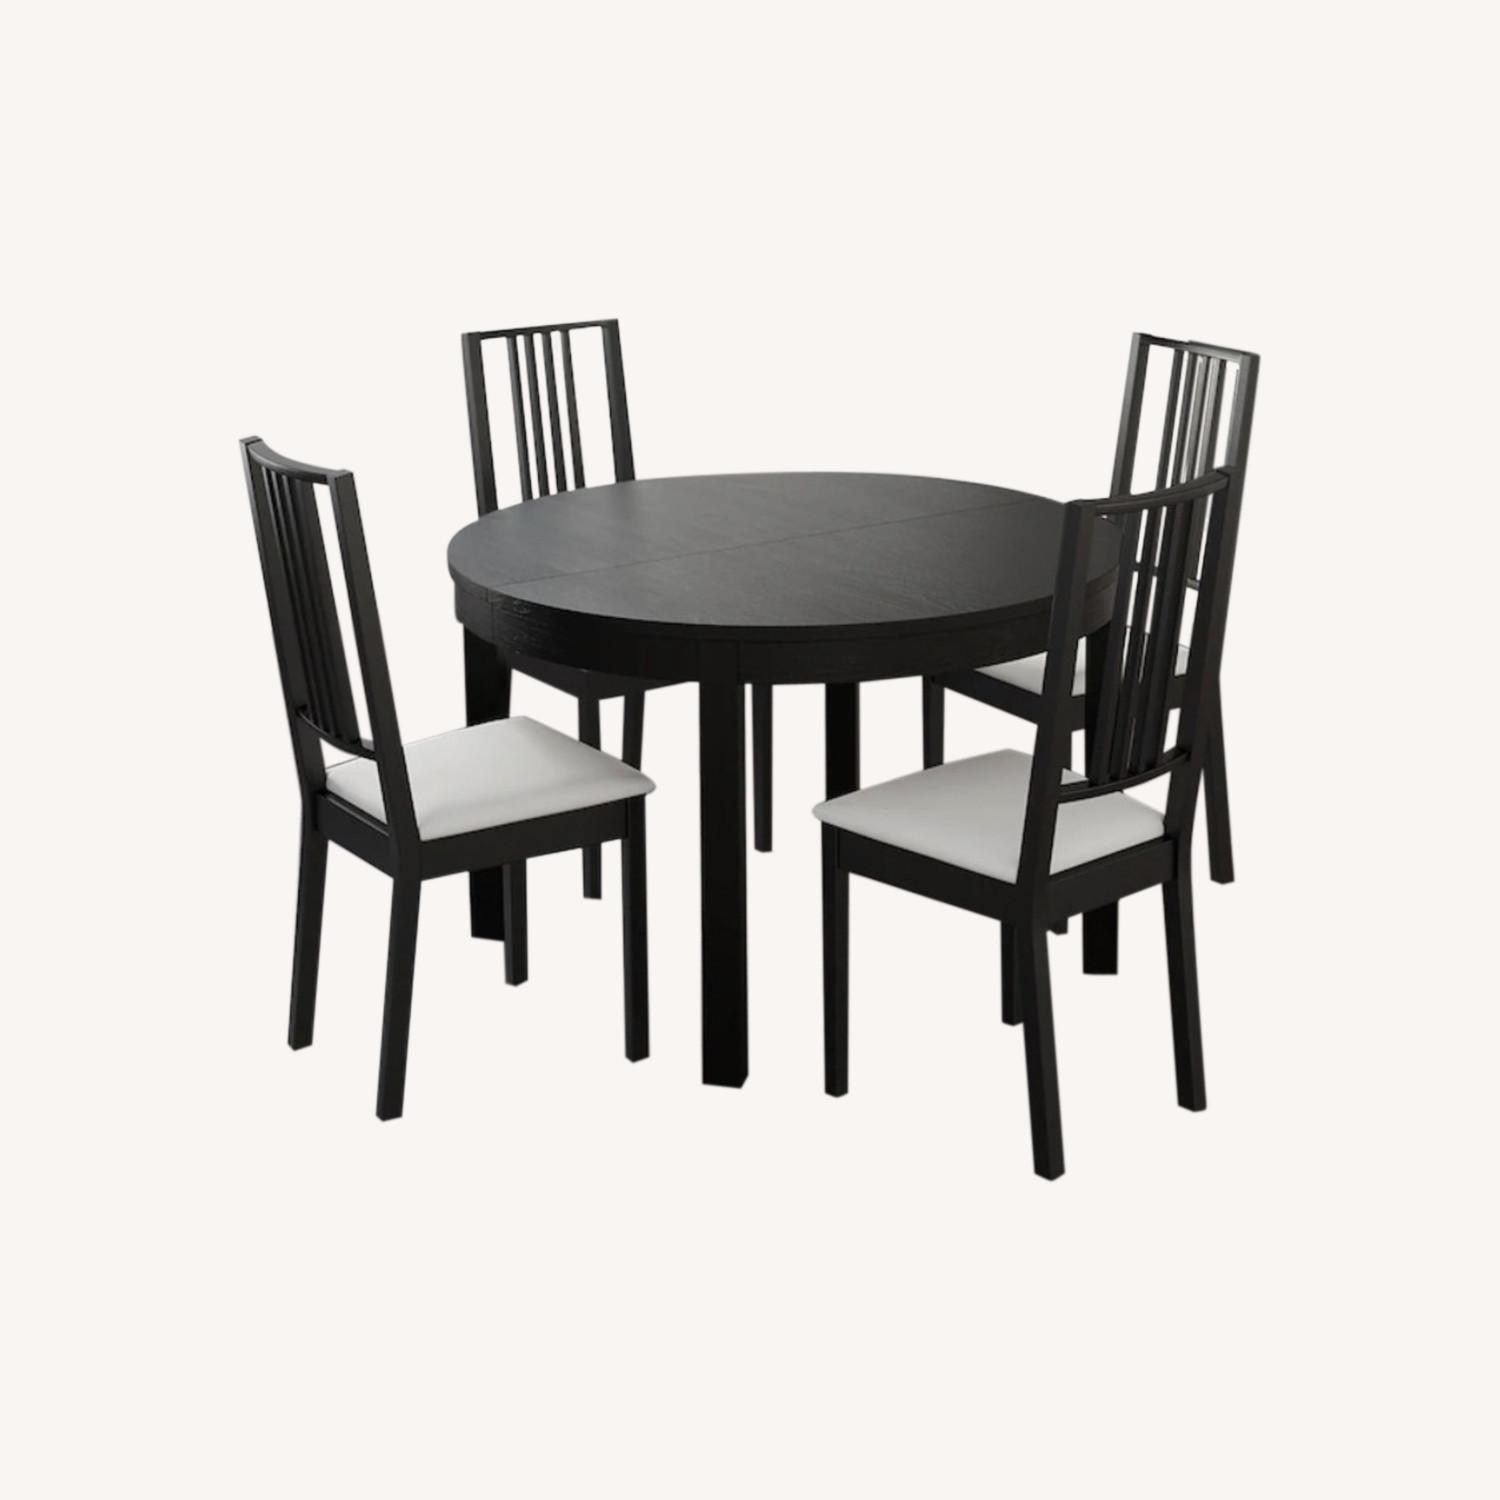 IKEA Dining Set - BJURSTA Table with INGOLF Chairs - image-0